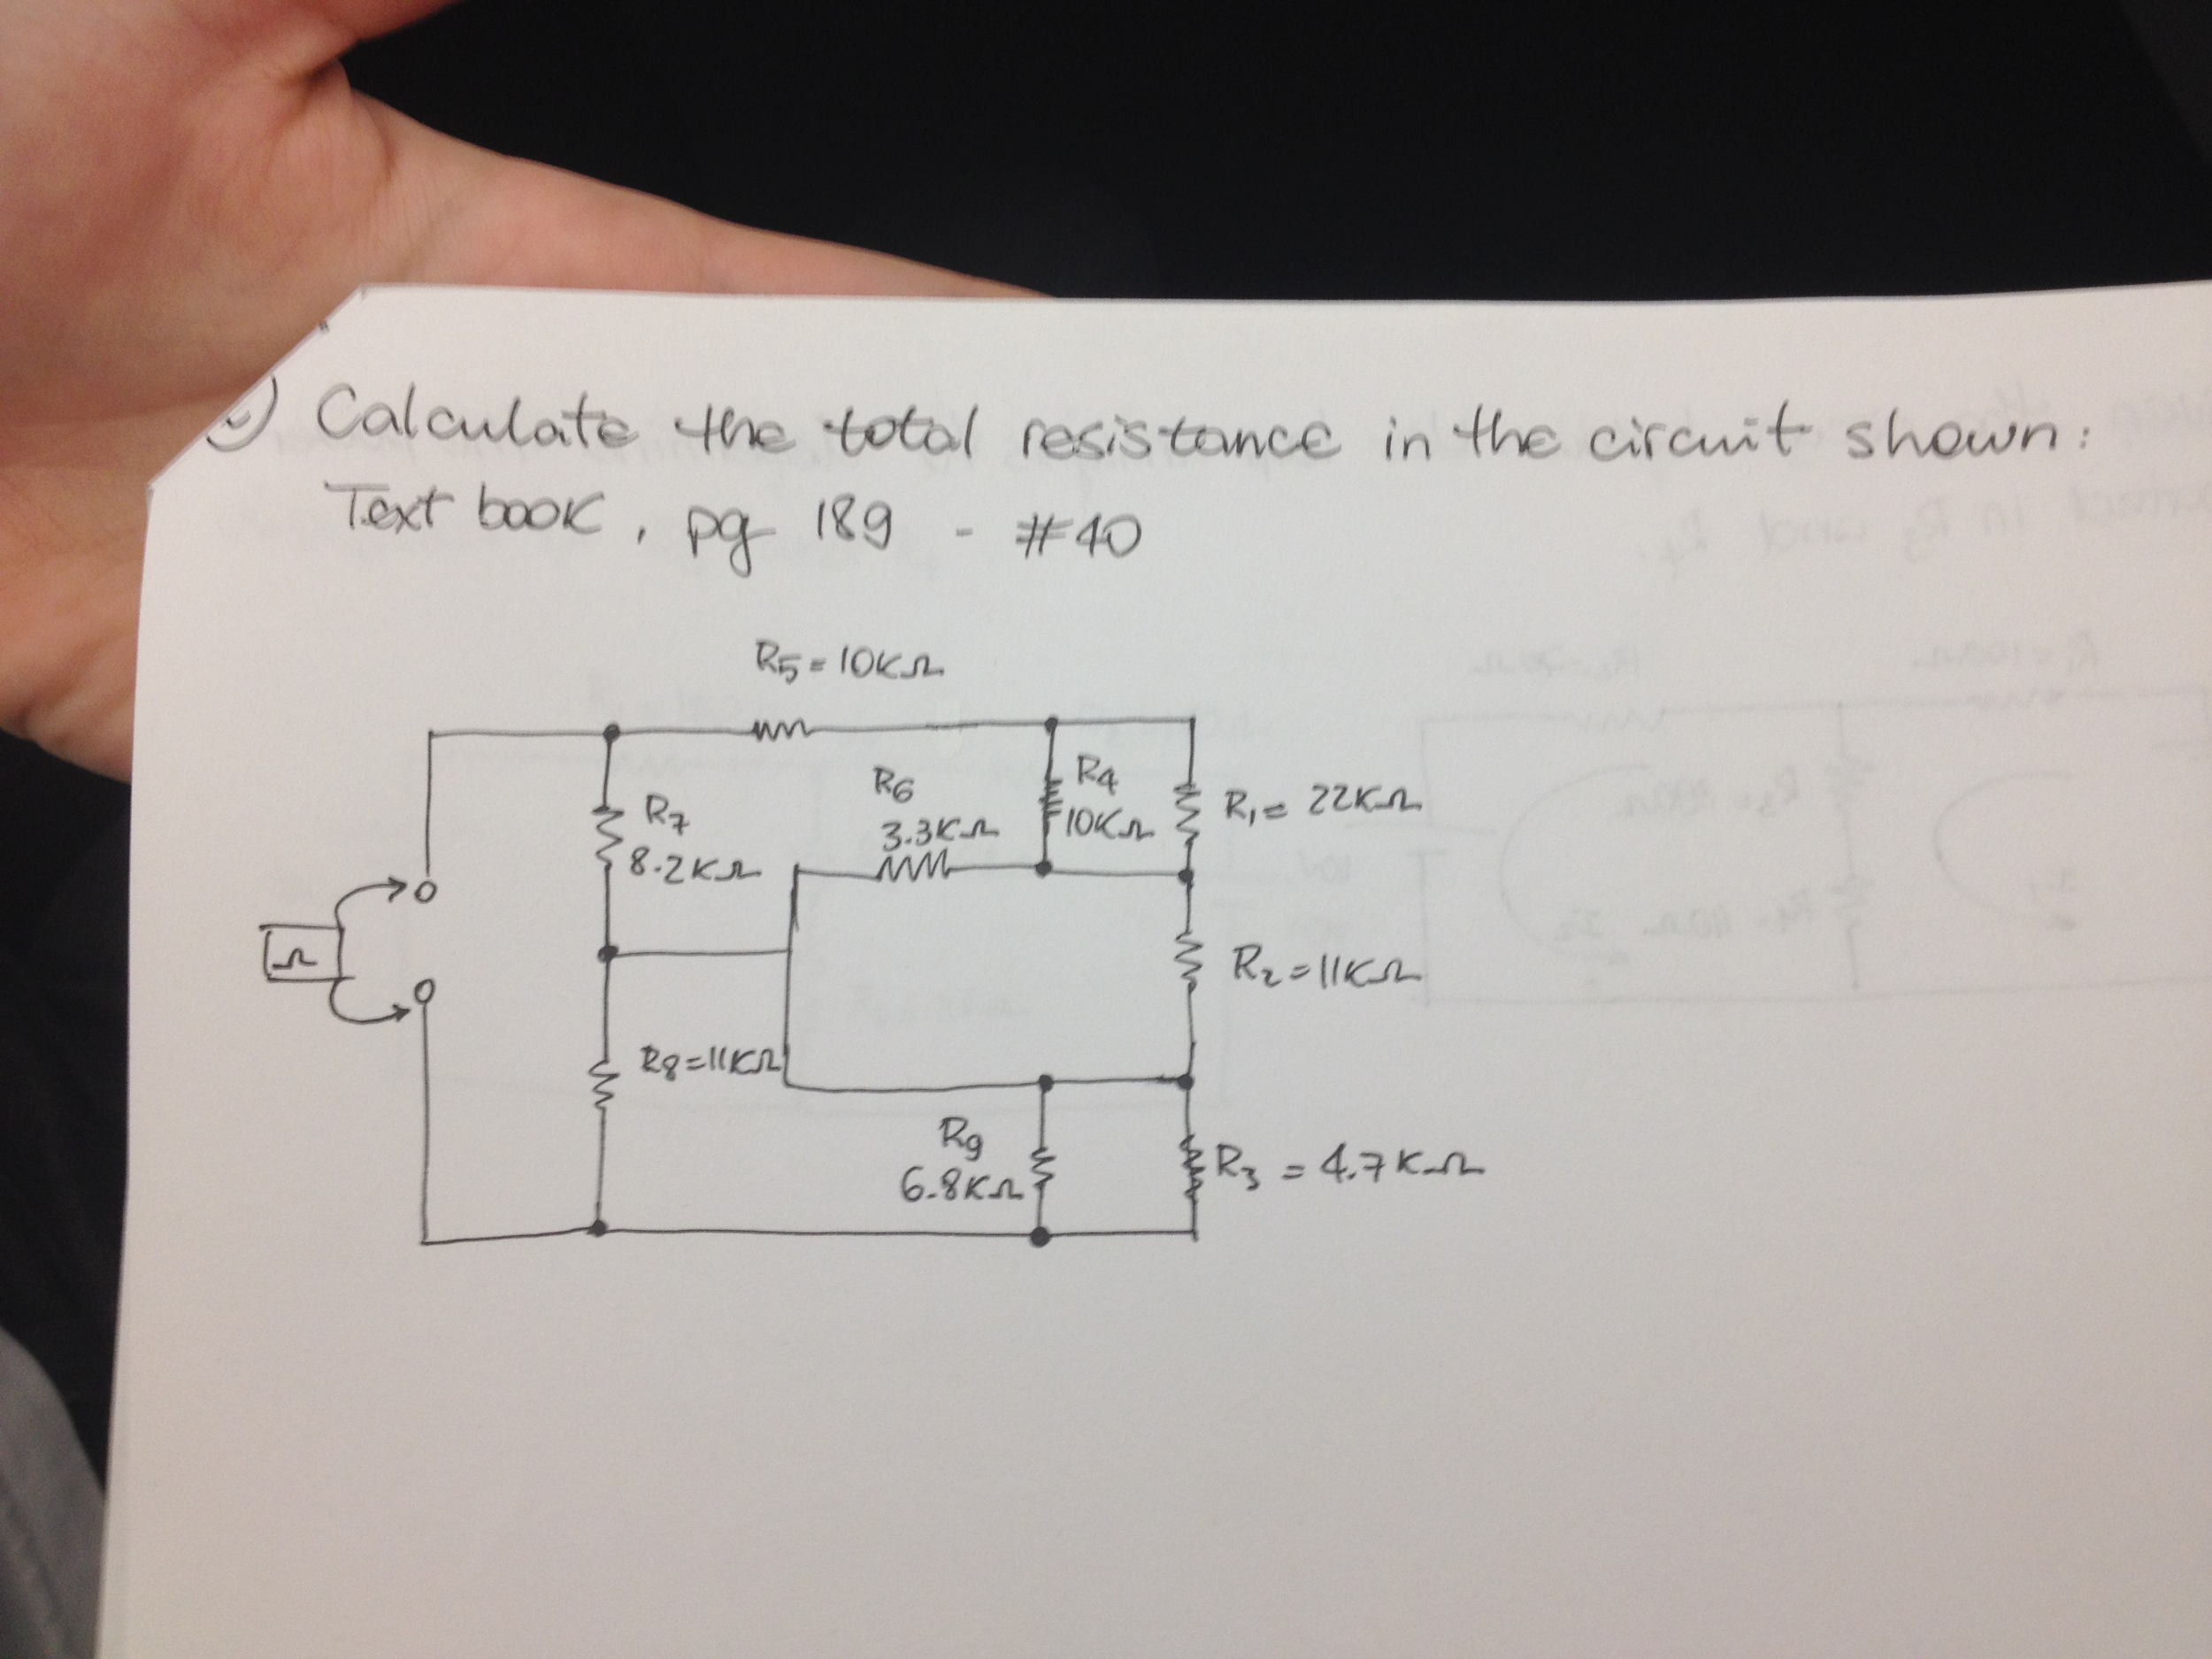 Calculate the total resistance in the circuit show